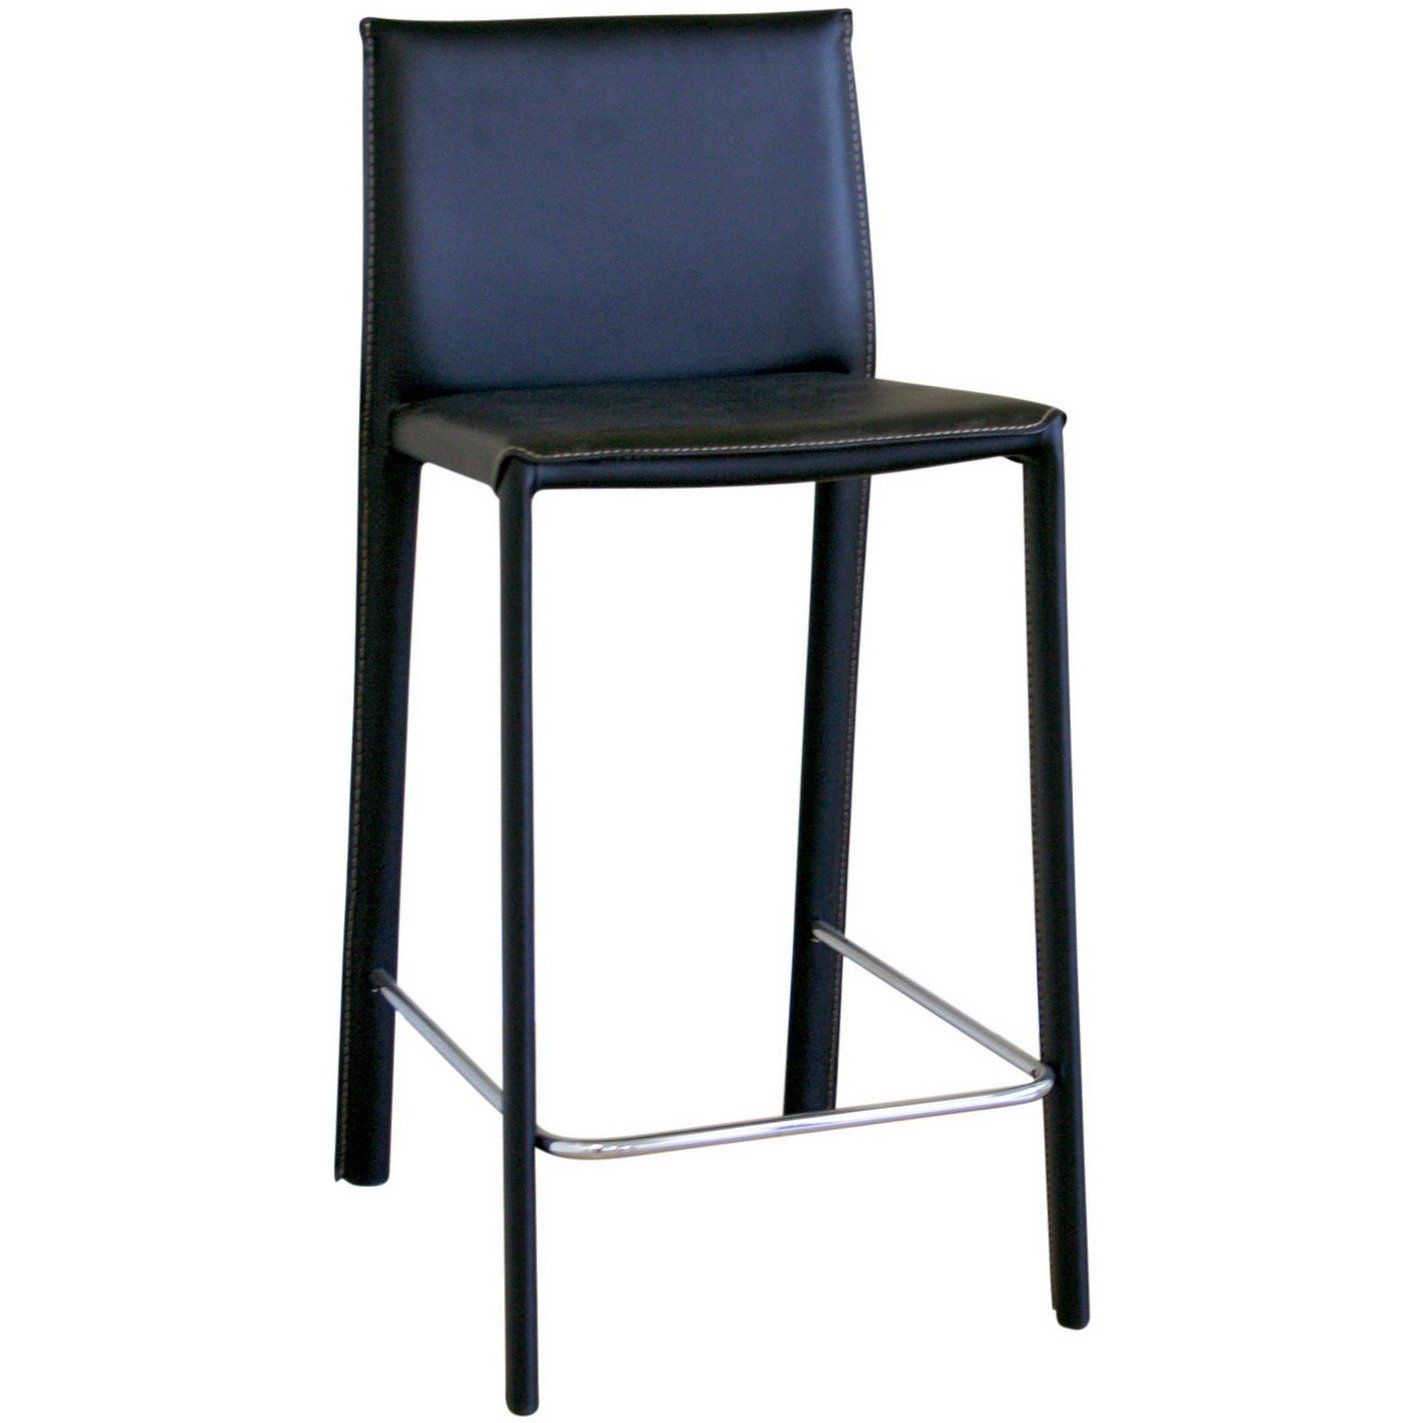 Baxton Studio Crawford Black Leather Counter Height Stools